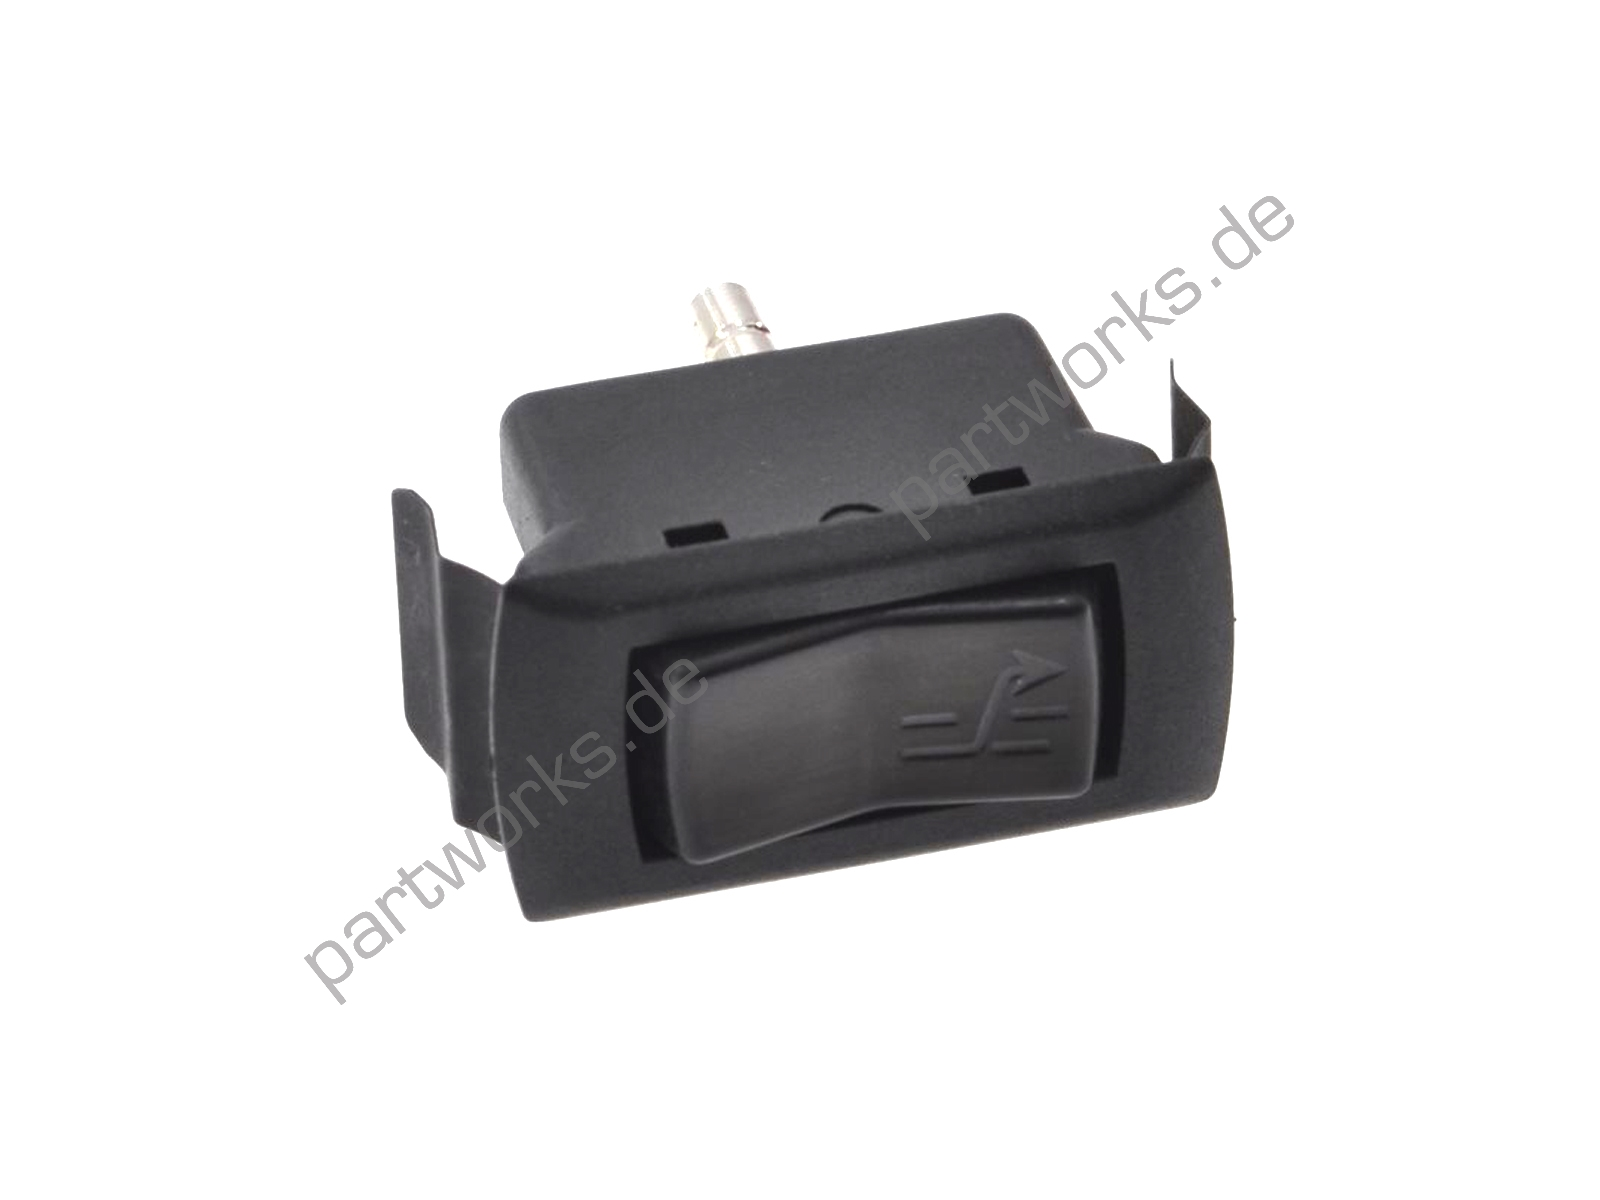 Switch for Porsche 911 F/G 964 sunroof/convertible top